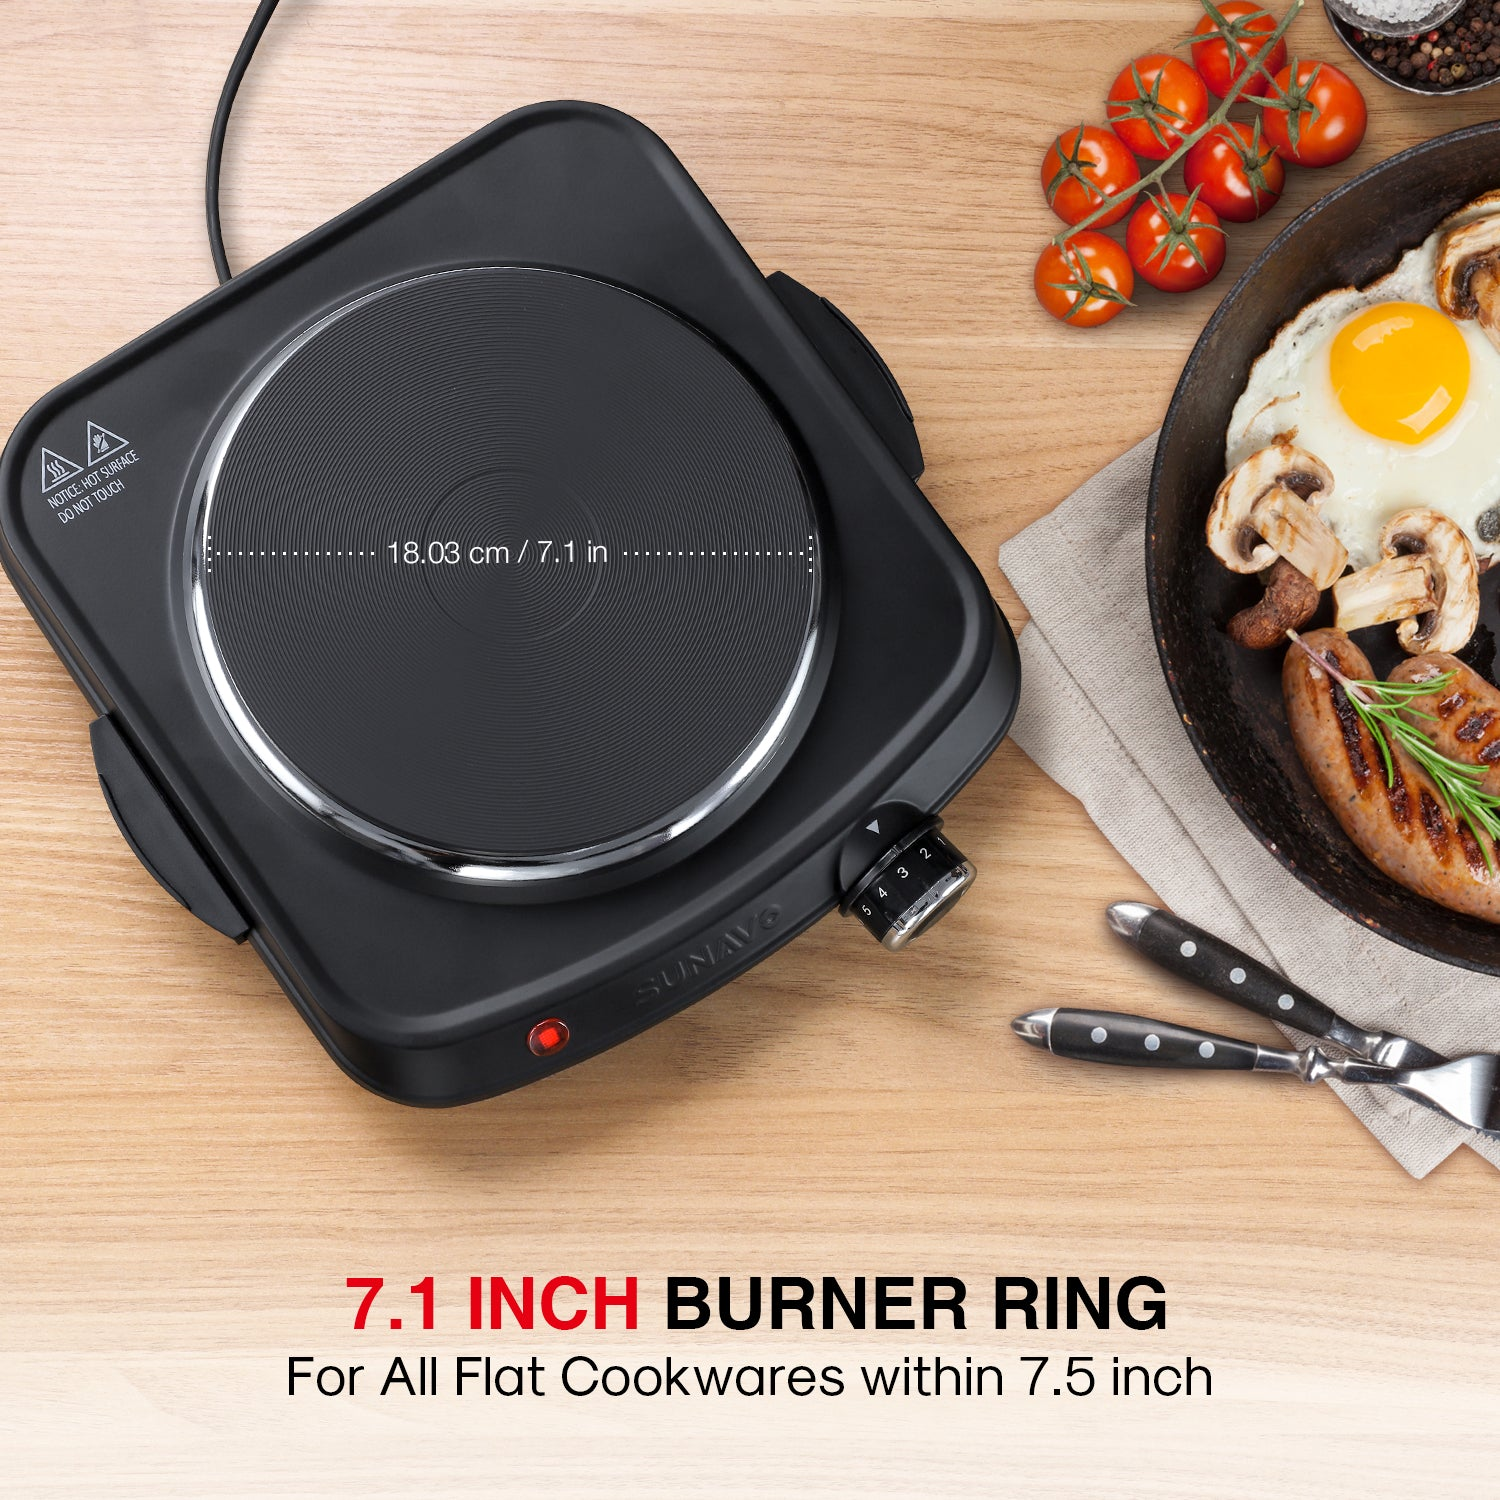 SUNAVO Single Hot Plate Cast-Iron with Handles CB-H21 Black